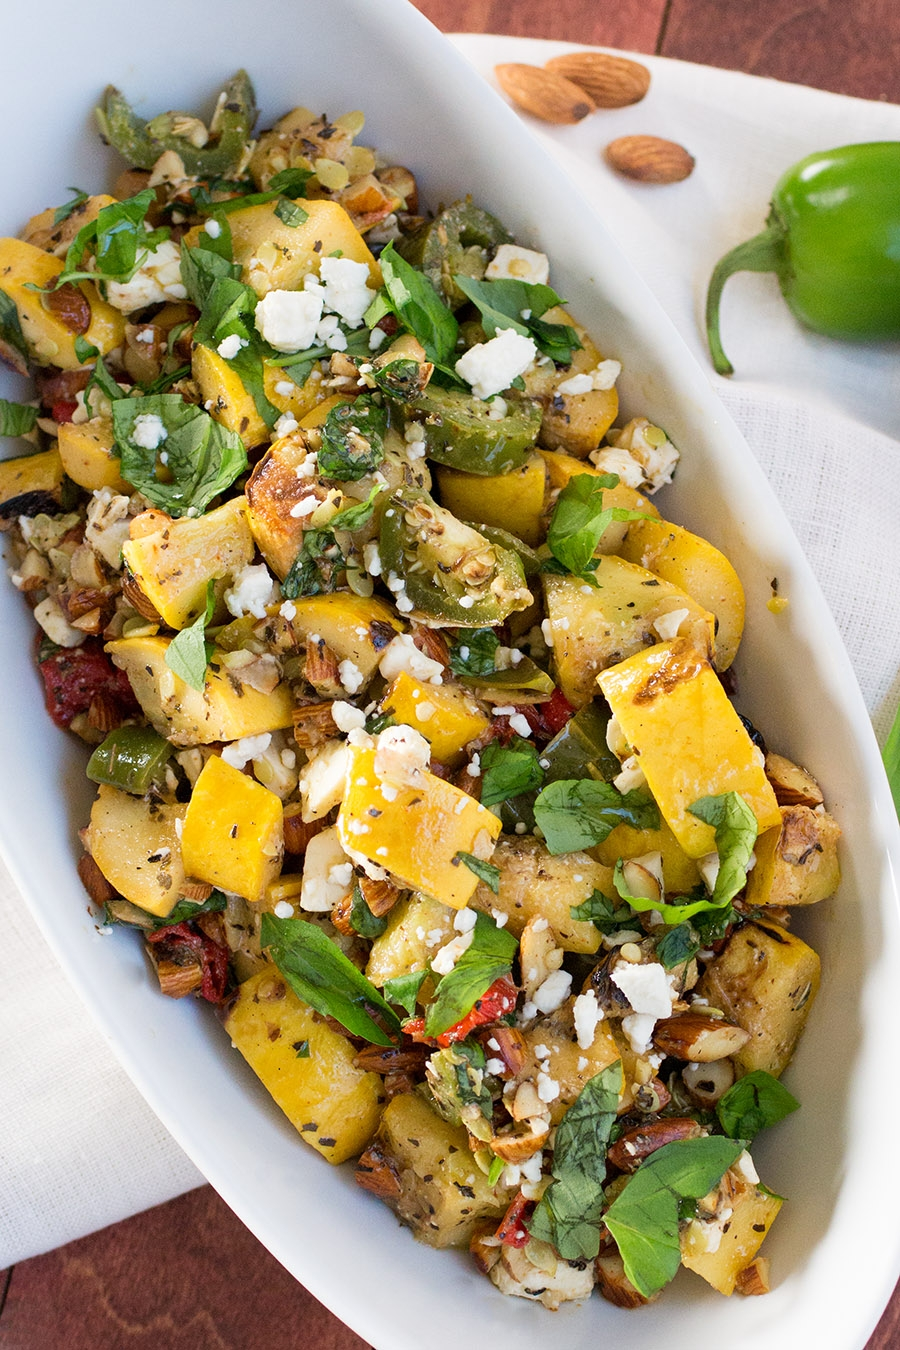 Grilled Summer Squash with Peppers, Basil and Feta Cheese